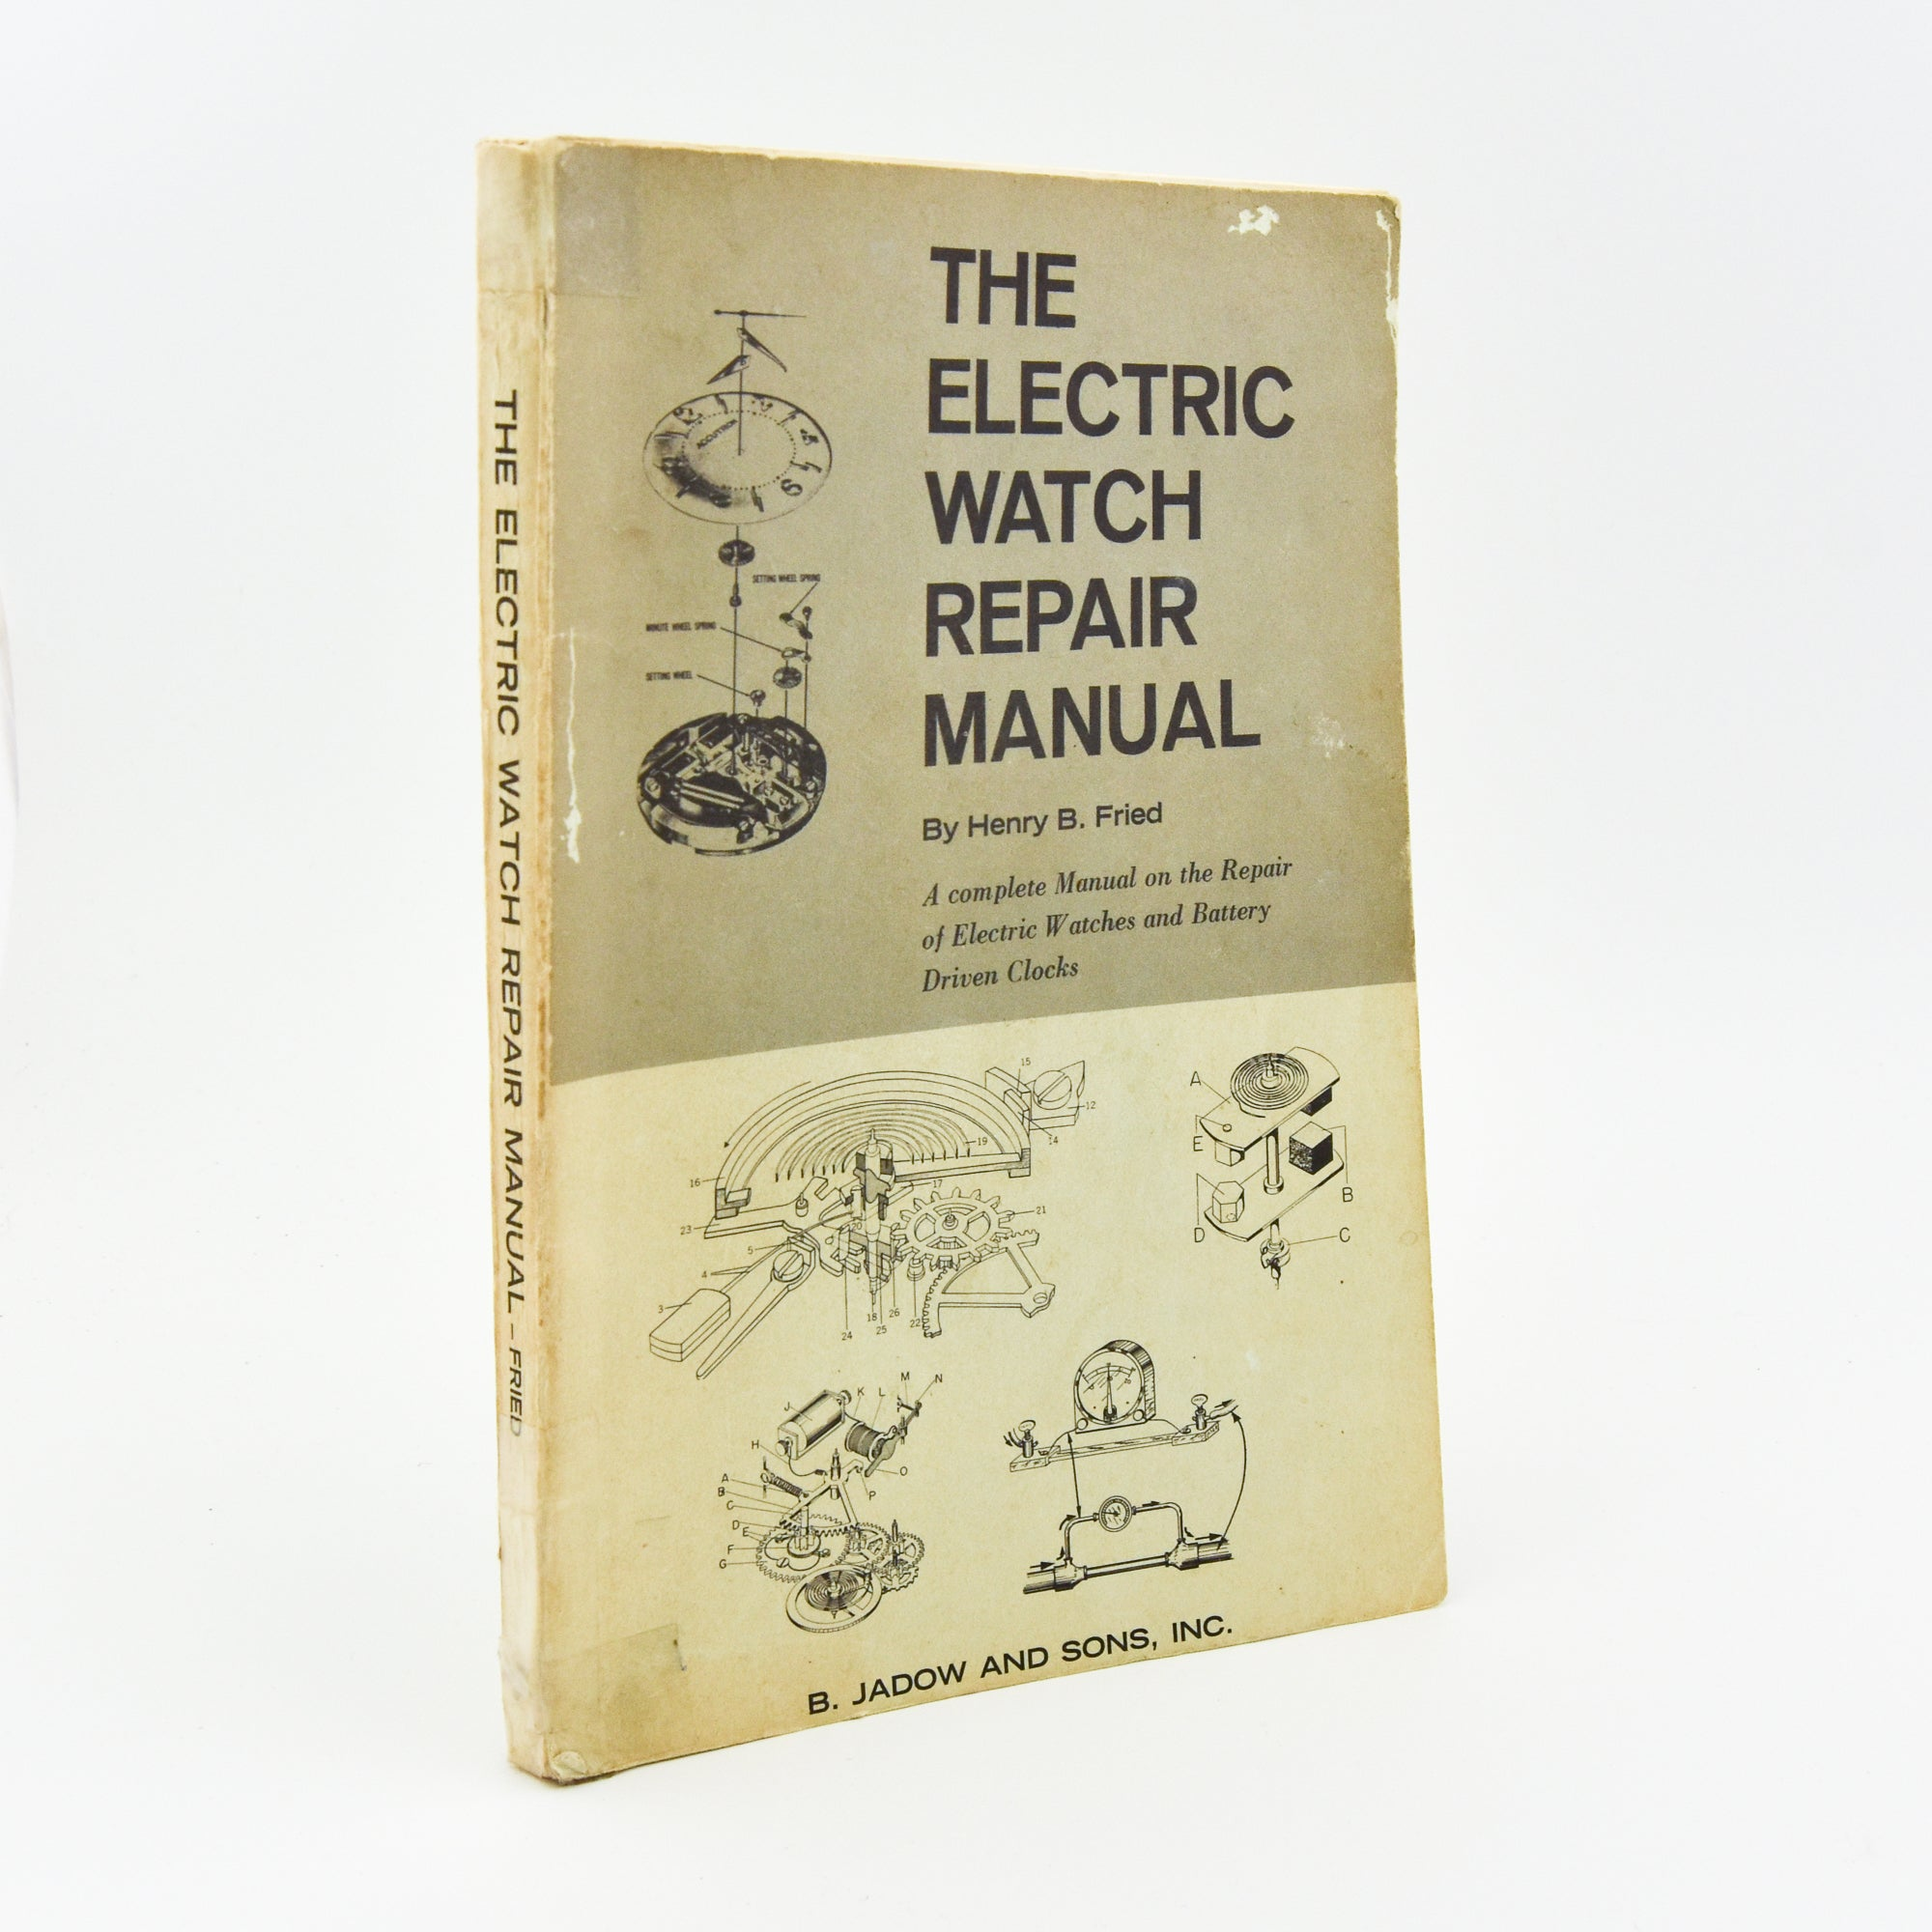 The Electric Watch Repair Manual by Henry B Fried